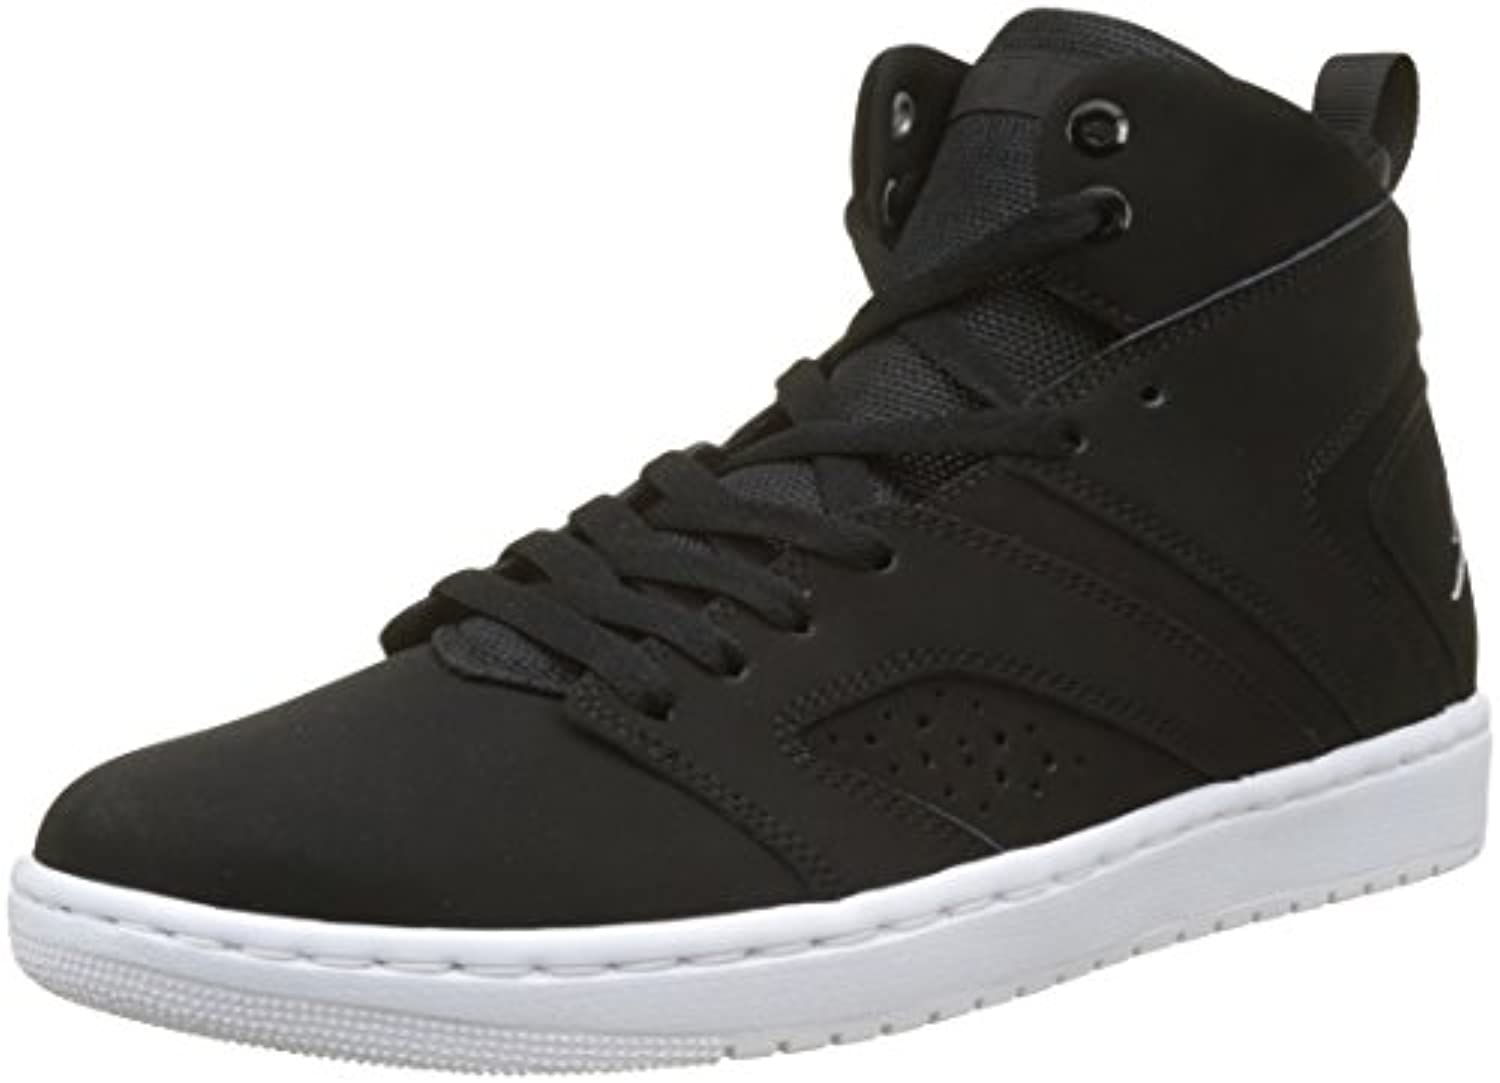 Nike Herren Jordan Flight Legend Basketballschuhe